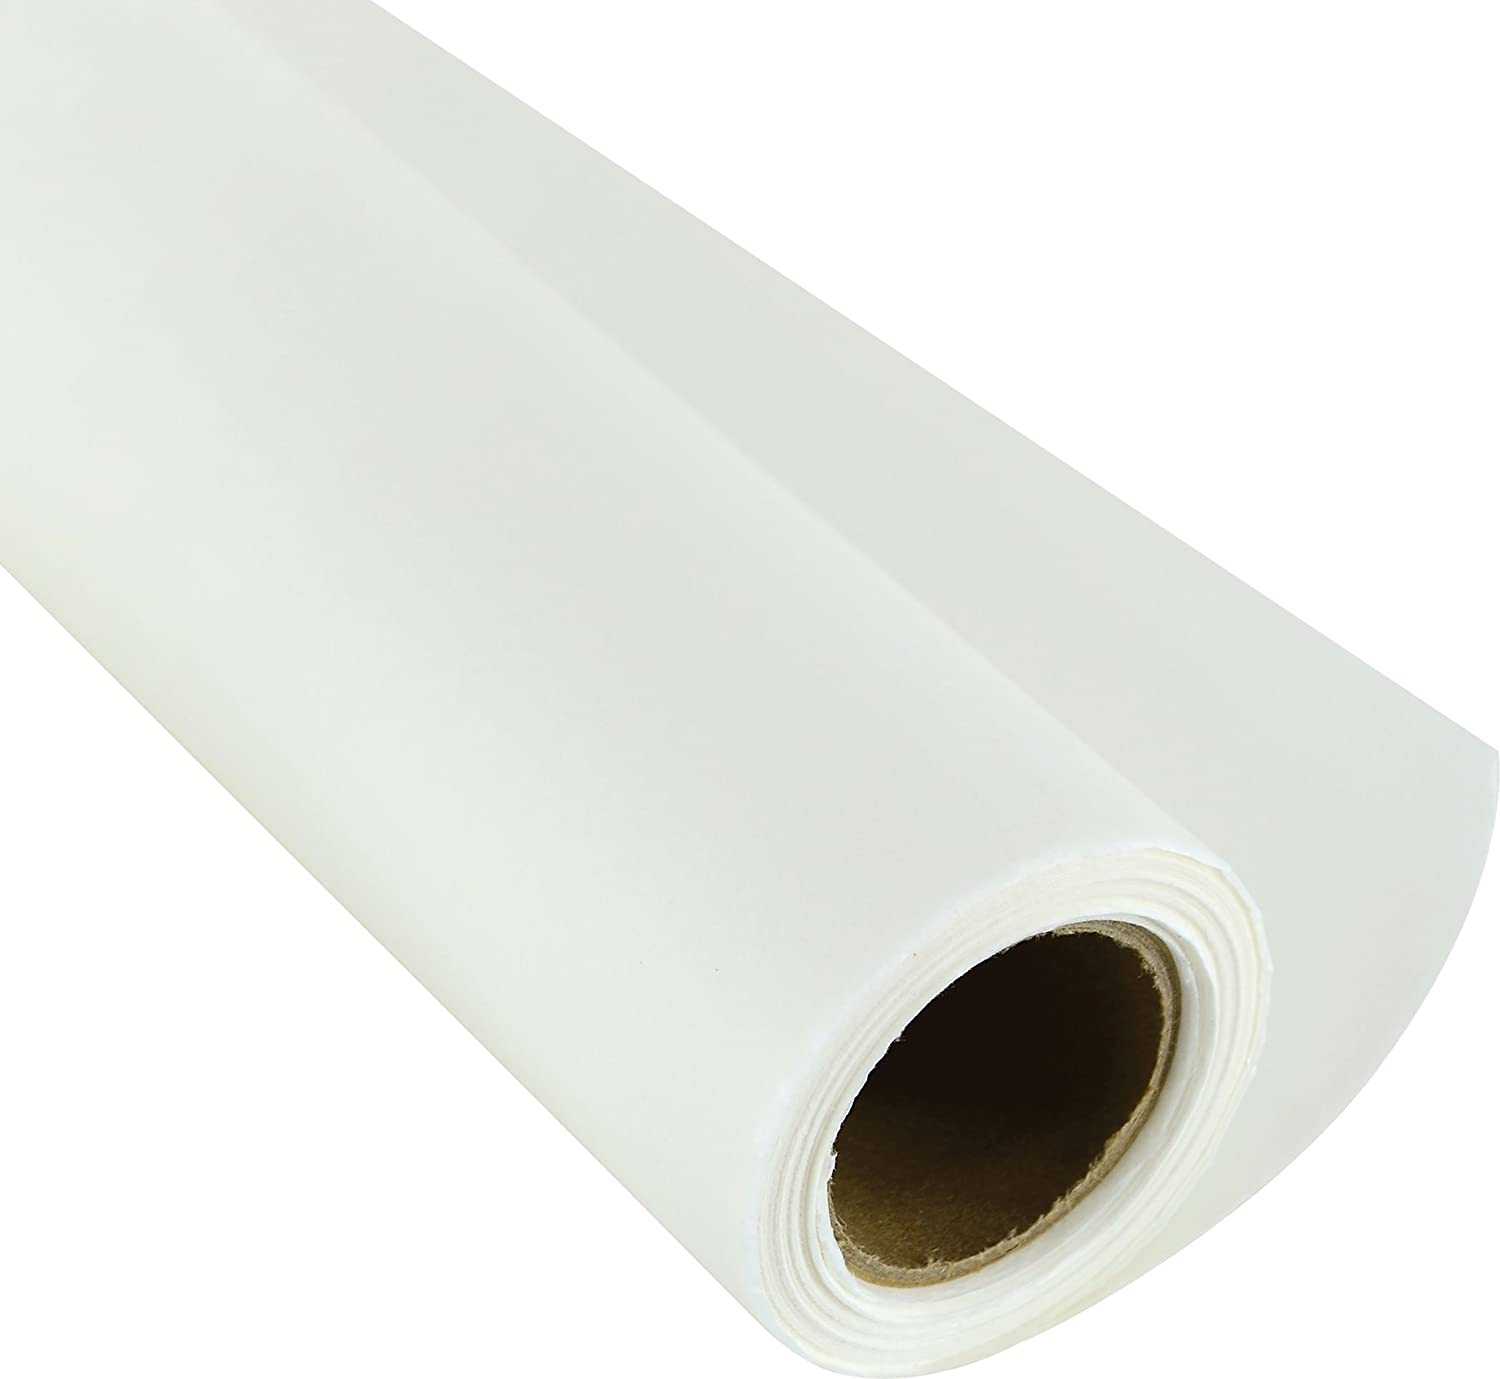 Bee Paper White Sketch and Trace Roll, 24-Inch by 50-Yards 515R-5024